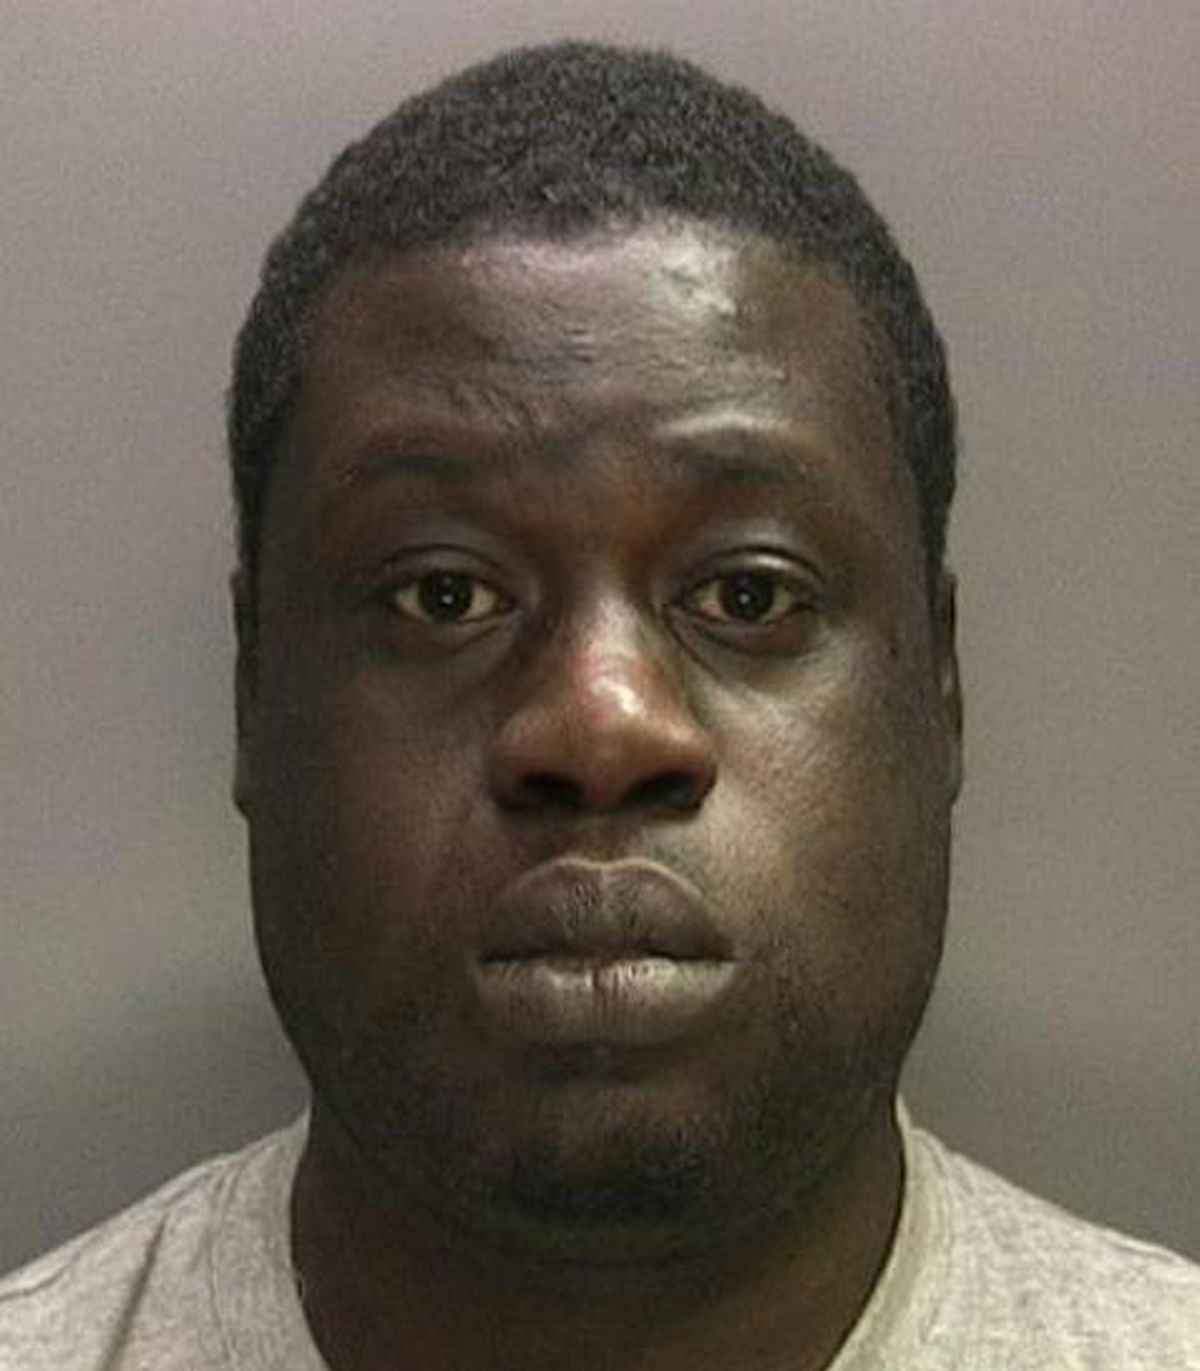 Johnson, aged 33, has been jailed for 18 years